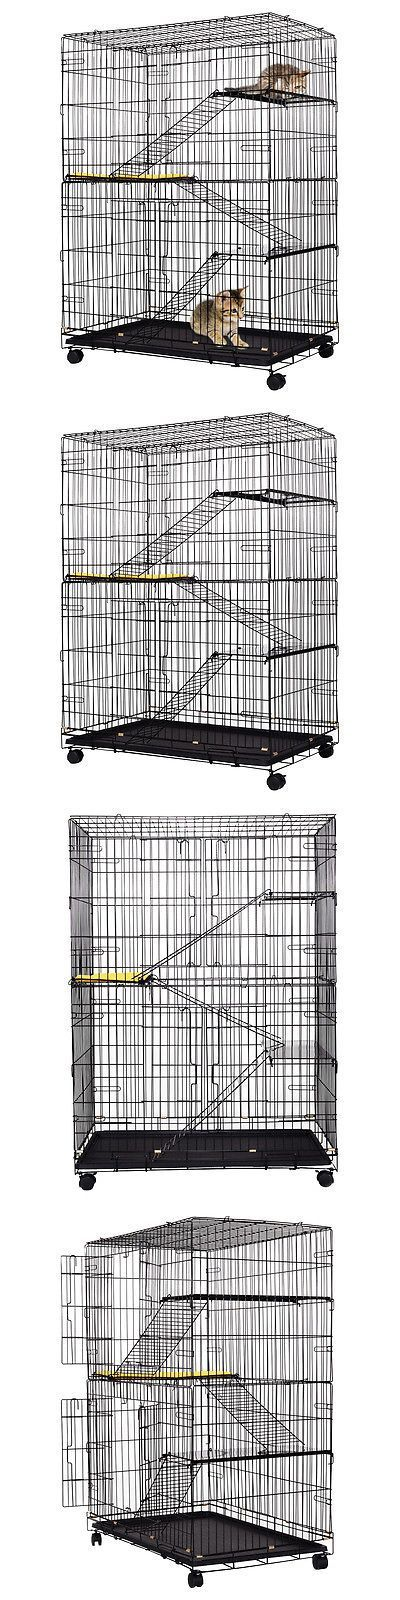 Carriers and Crates 116362: 4-Tier Cat Playpen Cat Cage With 3 Climbing Ladders And 3 Rest Benches And Cushion -> BUY IT NOW ONLY: $77.99 on eBay!